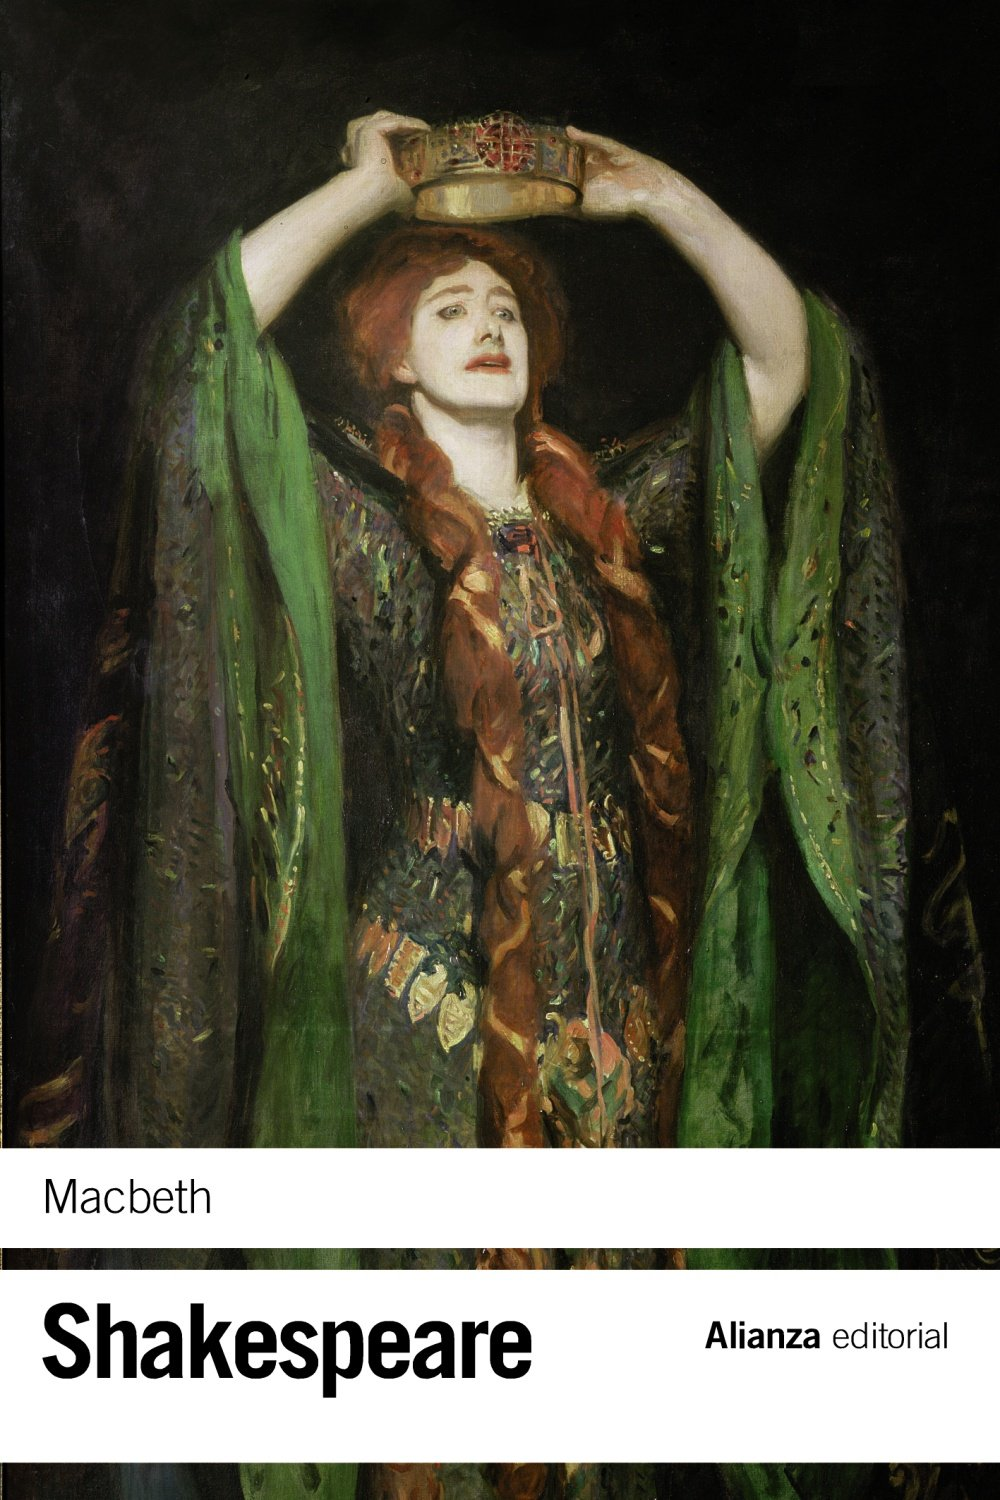 Macbeth (El Libro De Bolsillo - Bibliotecas De Autor - Biblioteca Shakespeare) Tapa blanda – 23 abr 2013 William Shakespeare Manuel Ángel Conejero Instituto Shakespeare Alianza